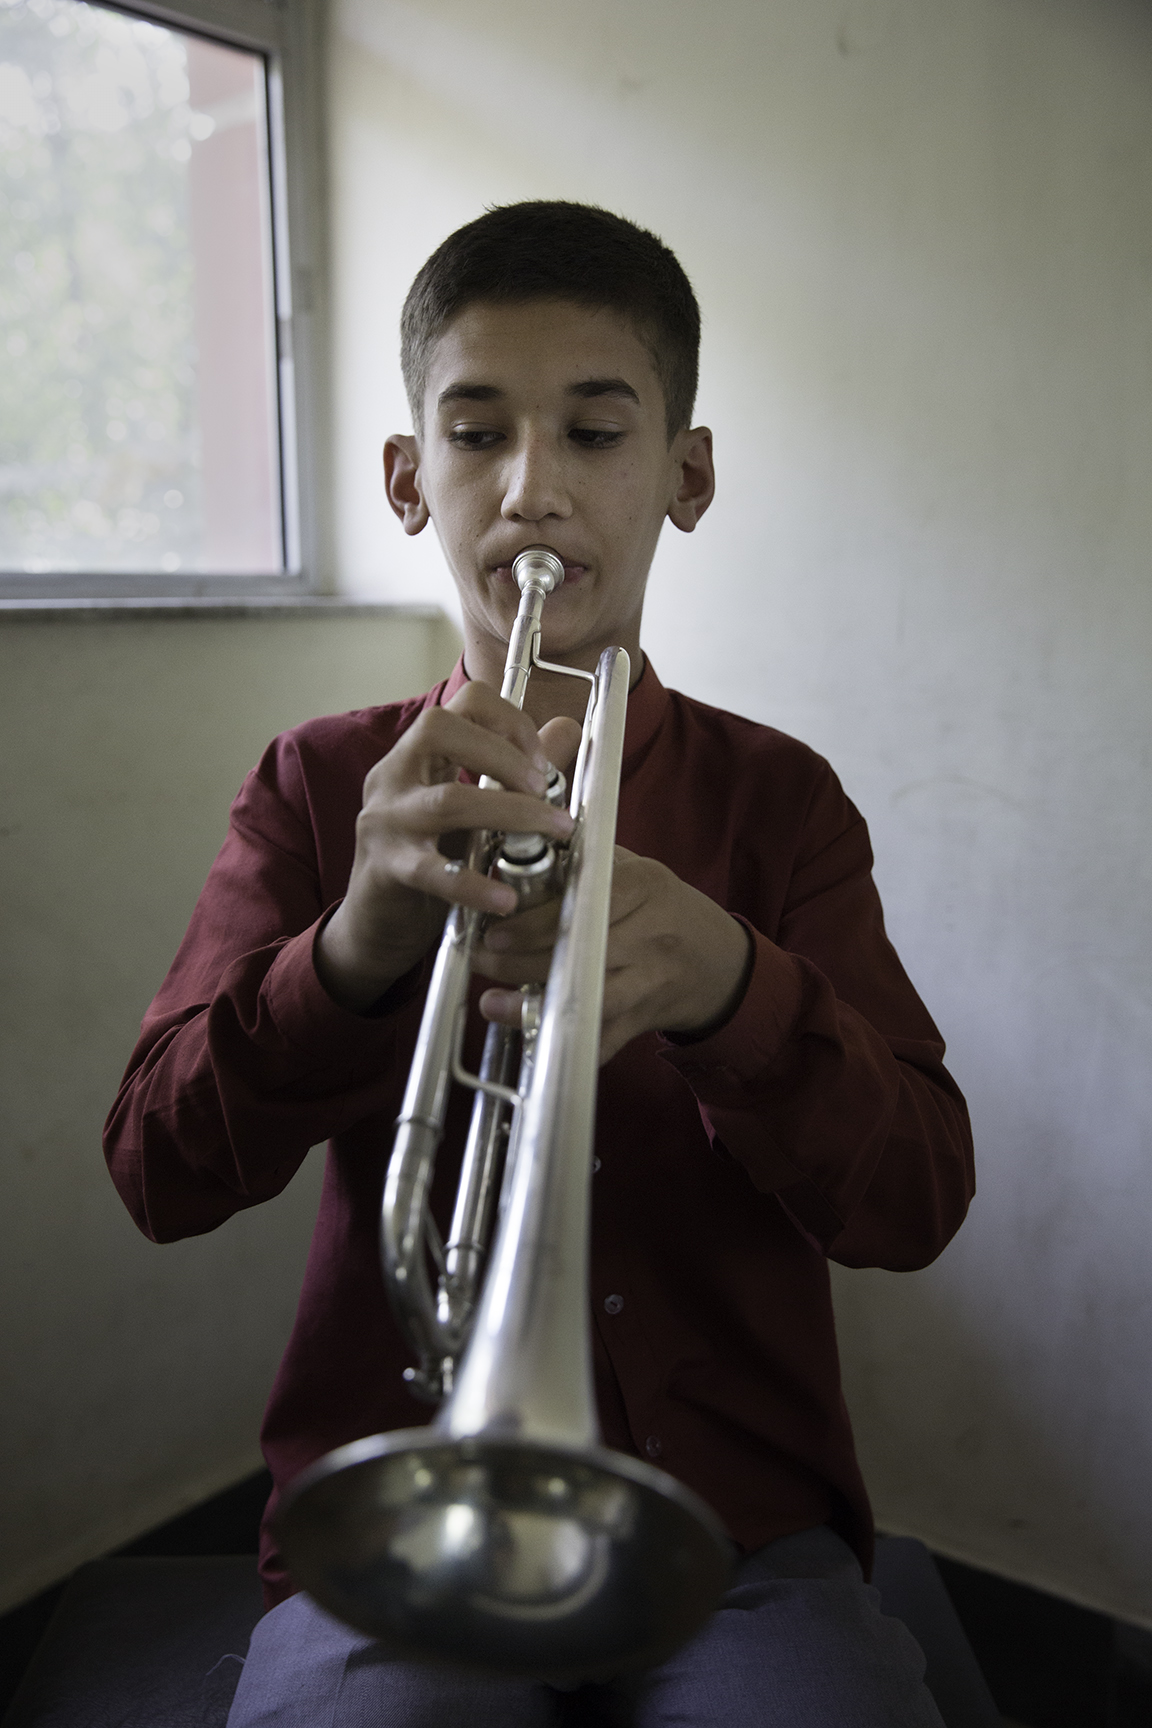 A trumpeter practices his notes in one of the school's studios.